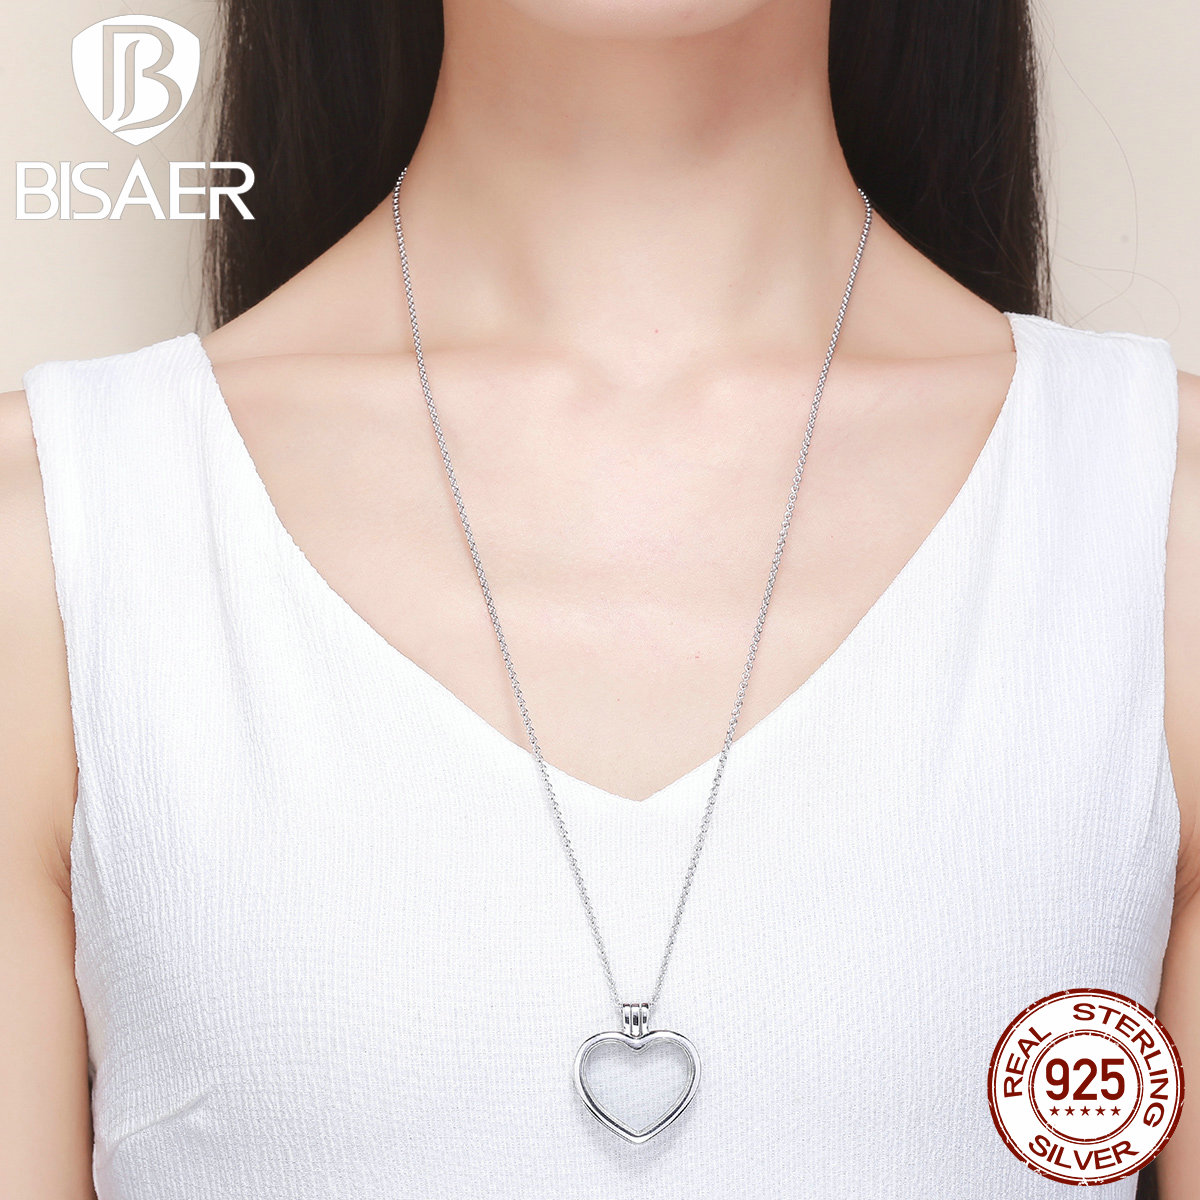 2018 New 925 Sterling Silver Medium Petite Memories Long Chain Necklace Heart Floating Locket Necklace Sterling-Silver-Jewelry authentic 100% 925 sterling silver round power box petite memories long chain necklace floating locket necklace diy jewelry